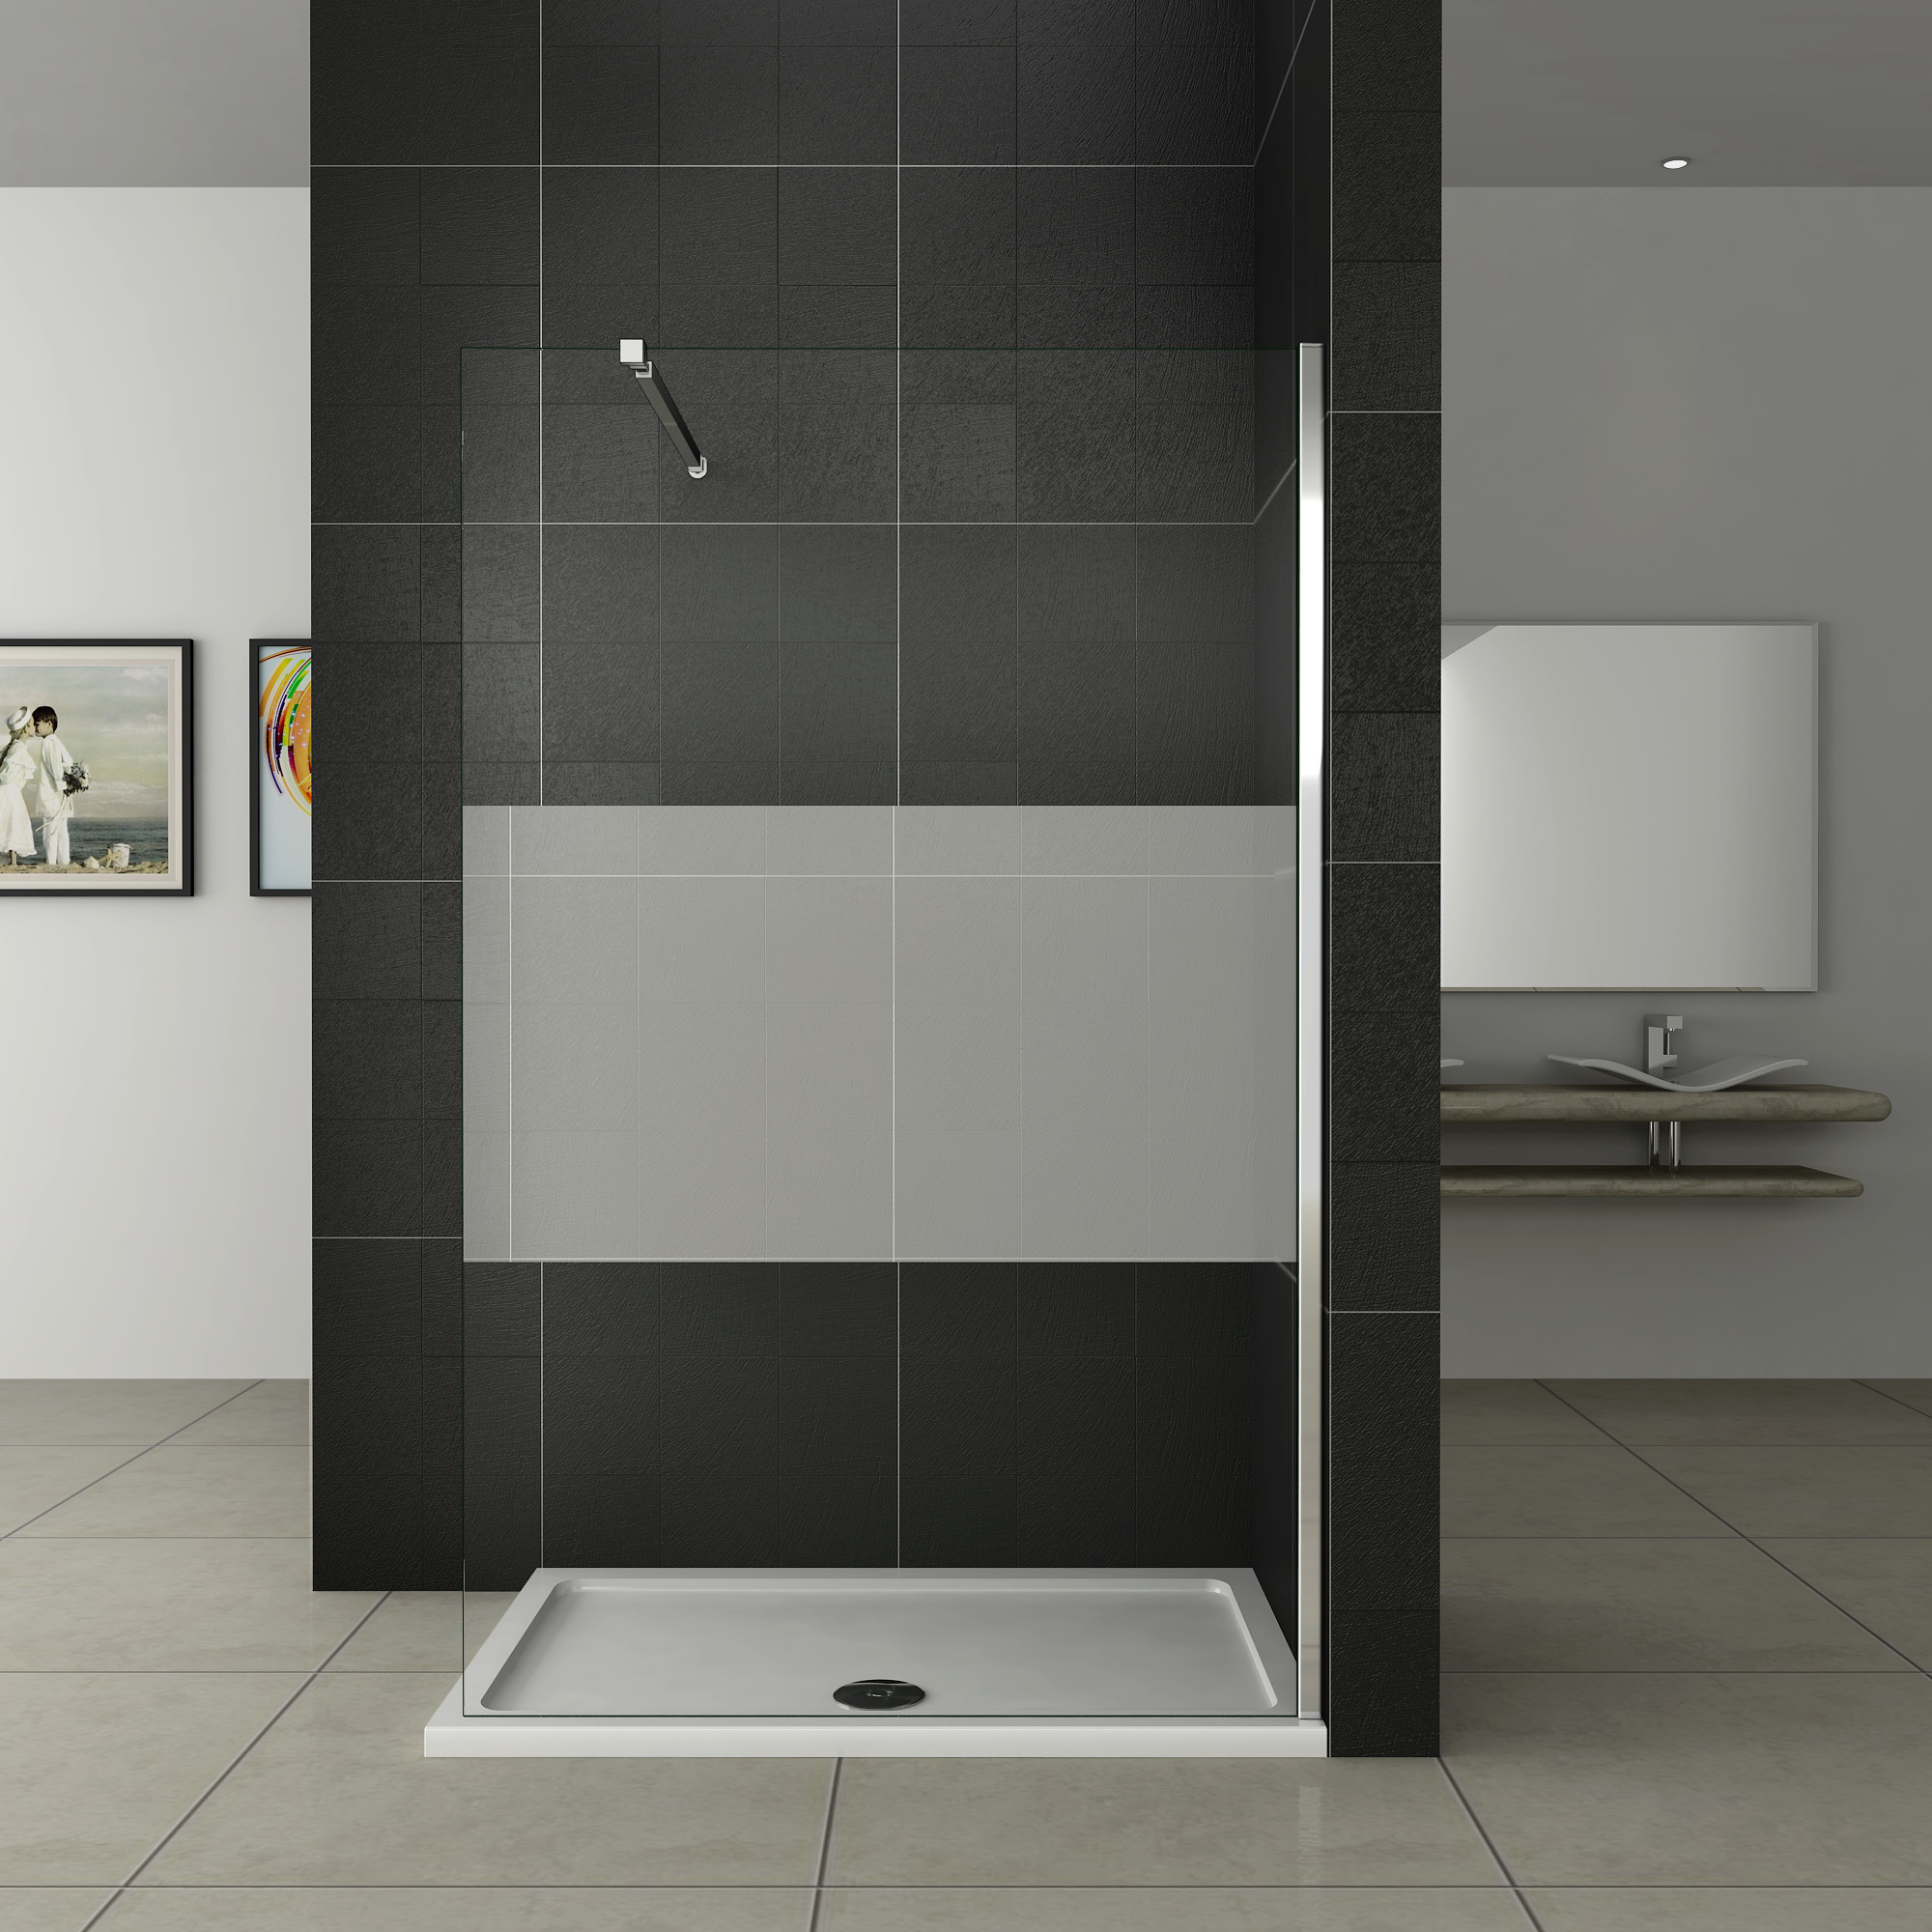 walk in dusche duschwand duschabtrennung echtglas 10mm nano glas 120x200cm w12e 20 10 sa f 084. Black Bedroom Furniture Sets. Home Design Ideas